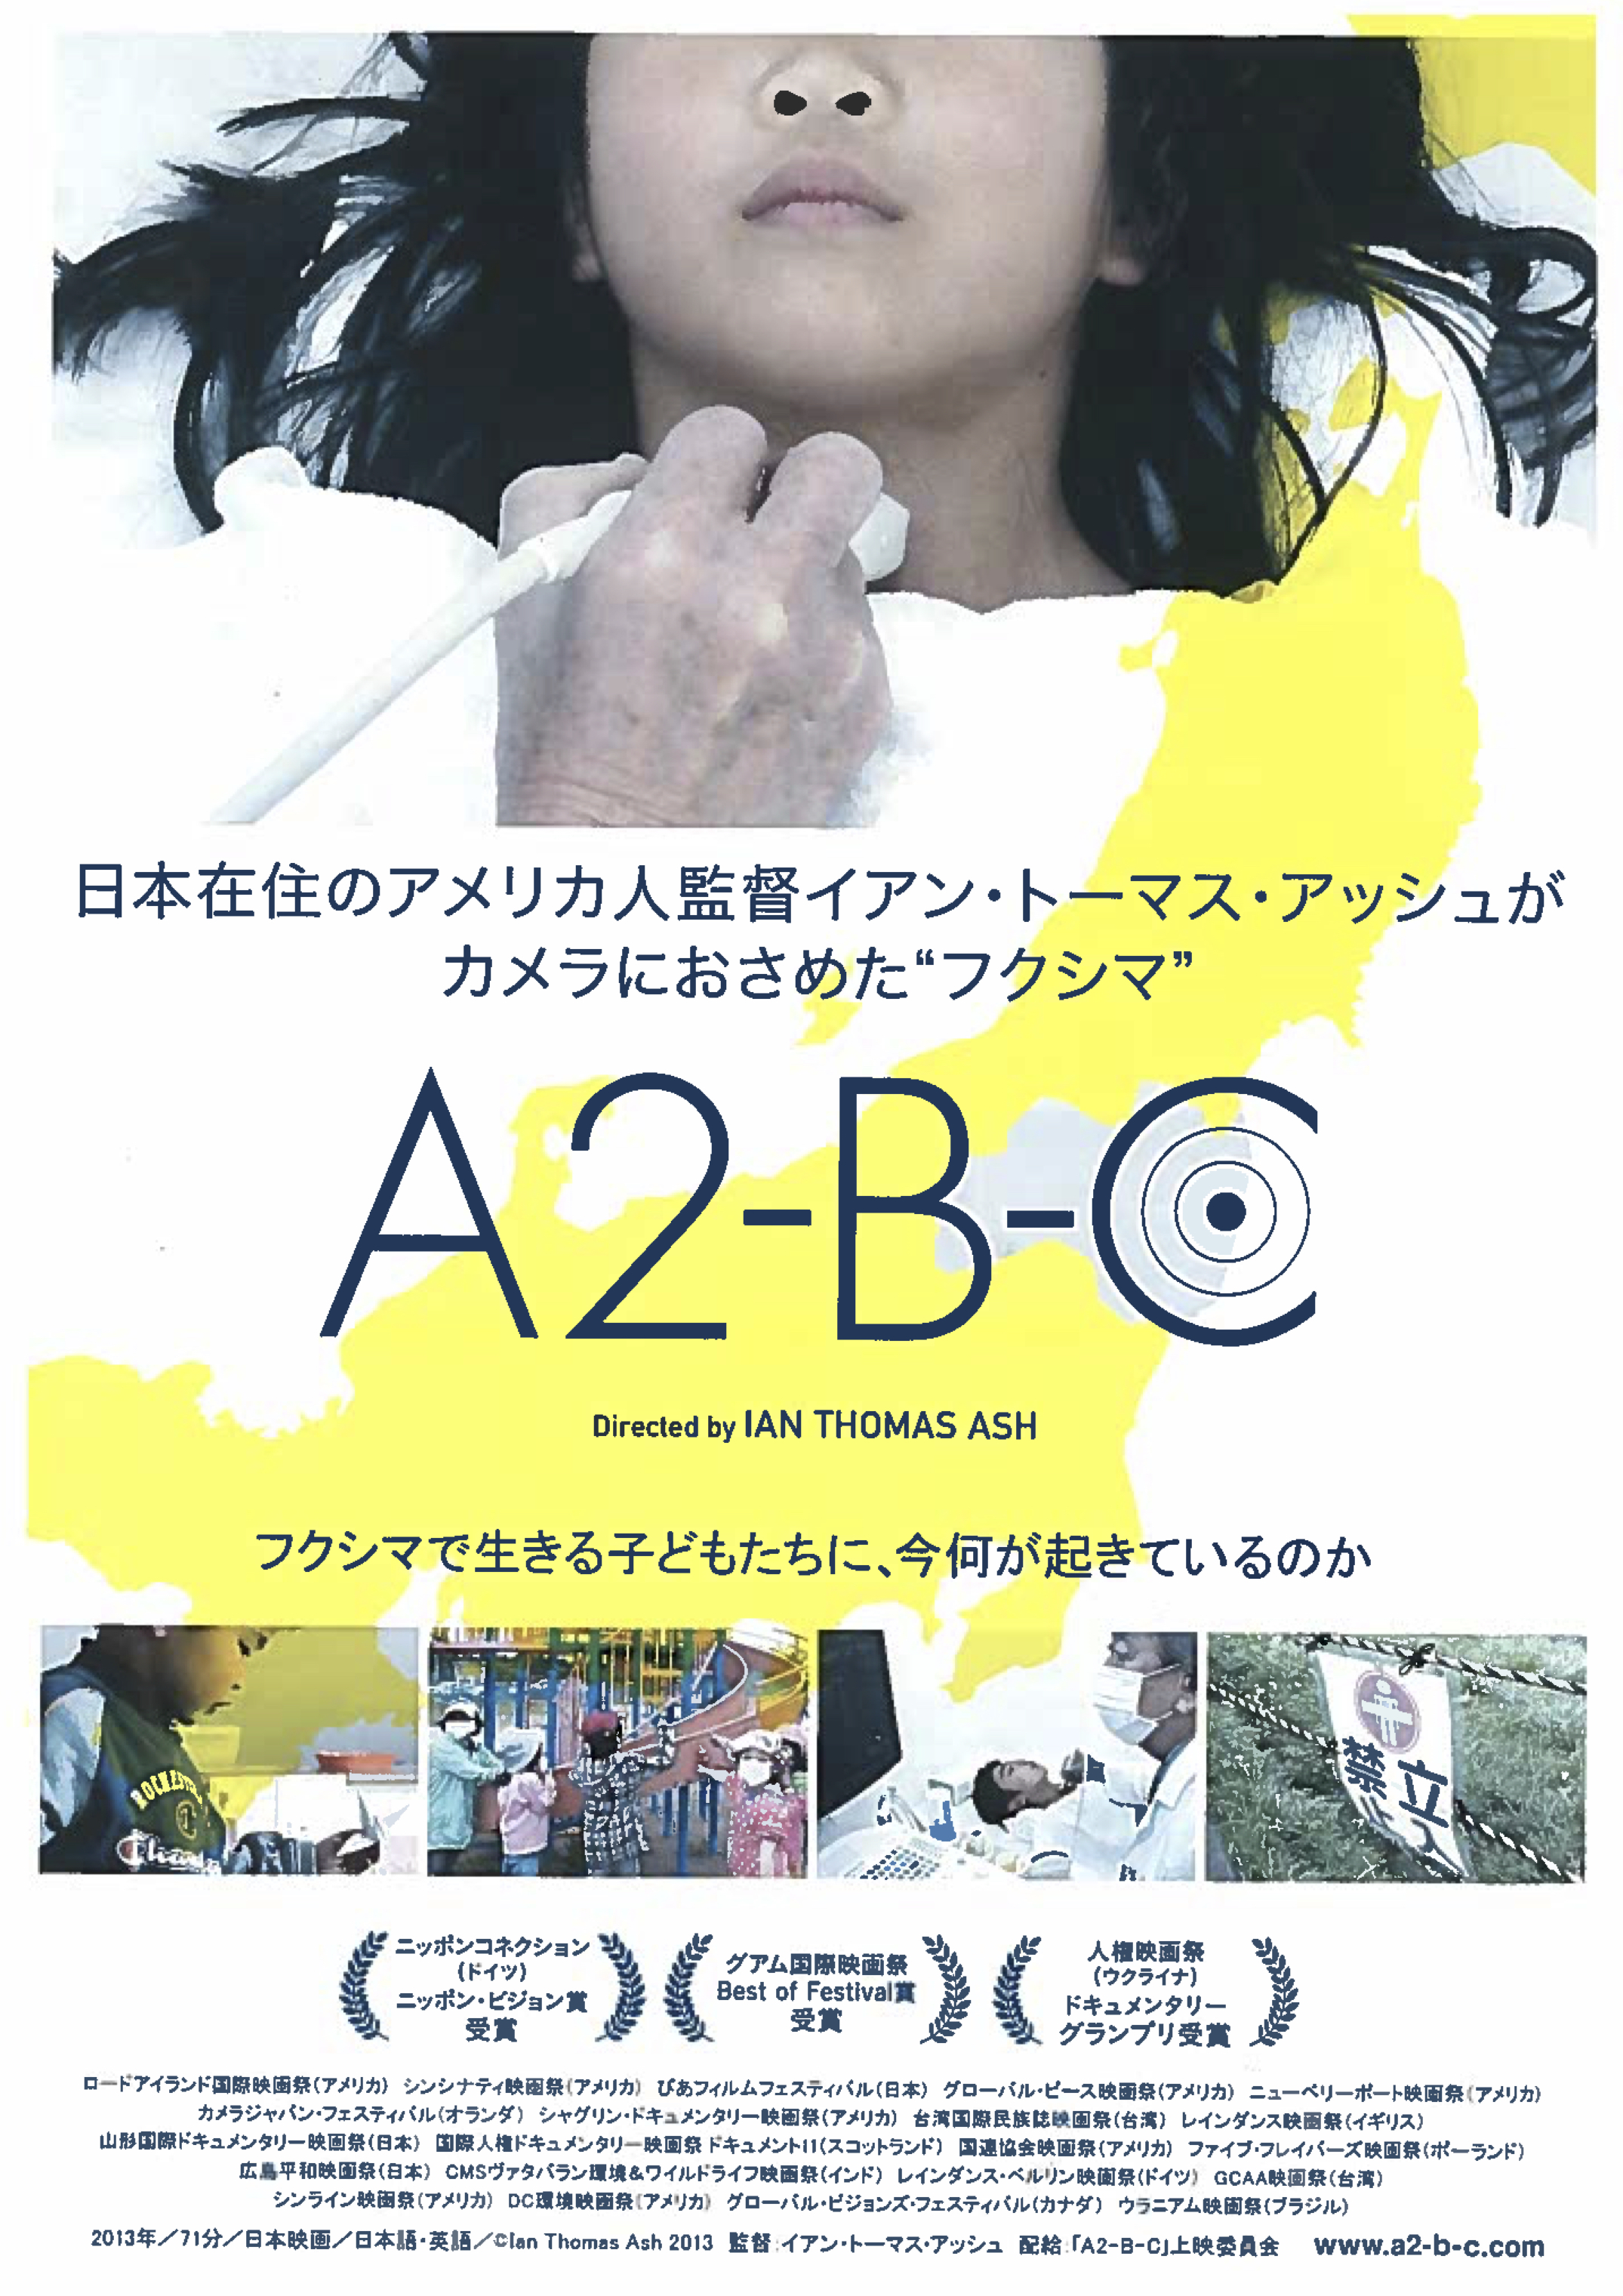 A2BC 3.11 Movie JPN Poster